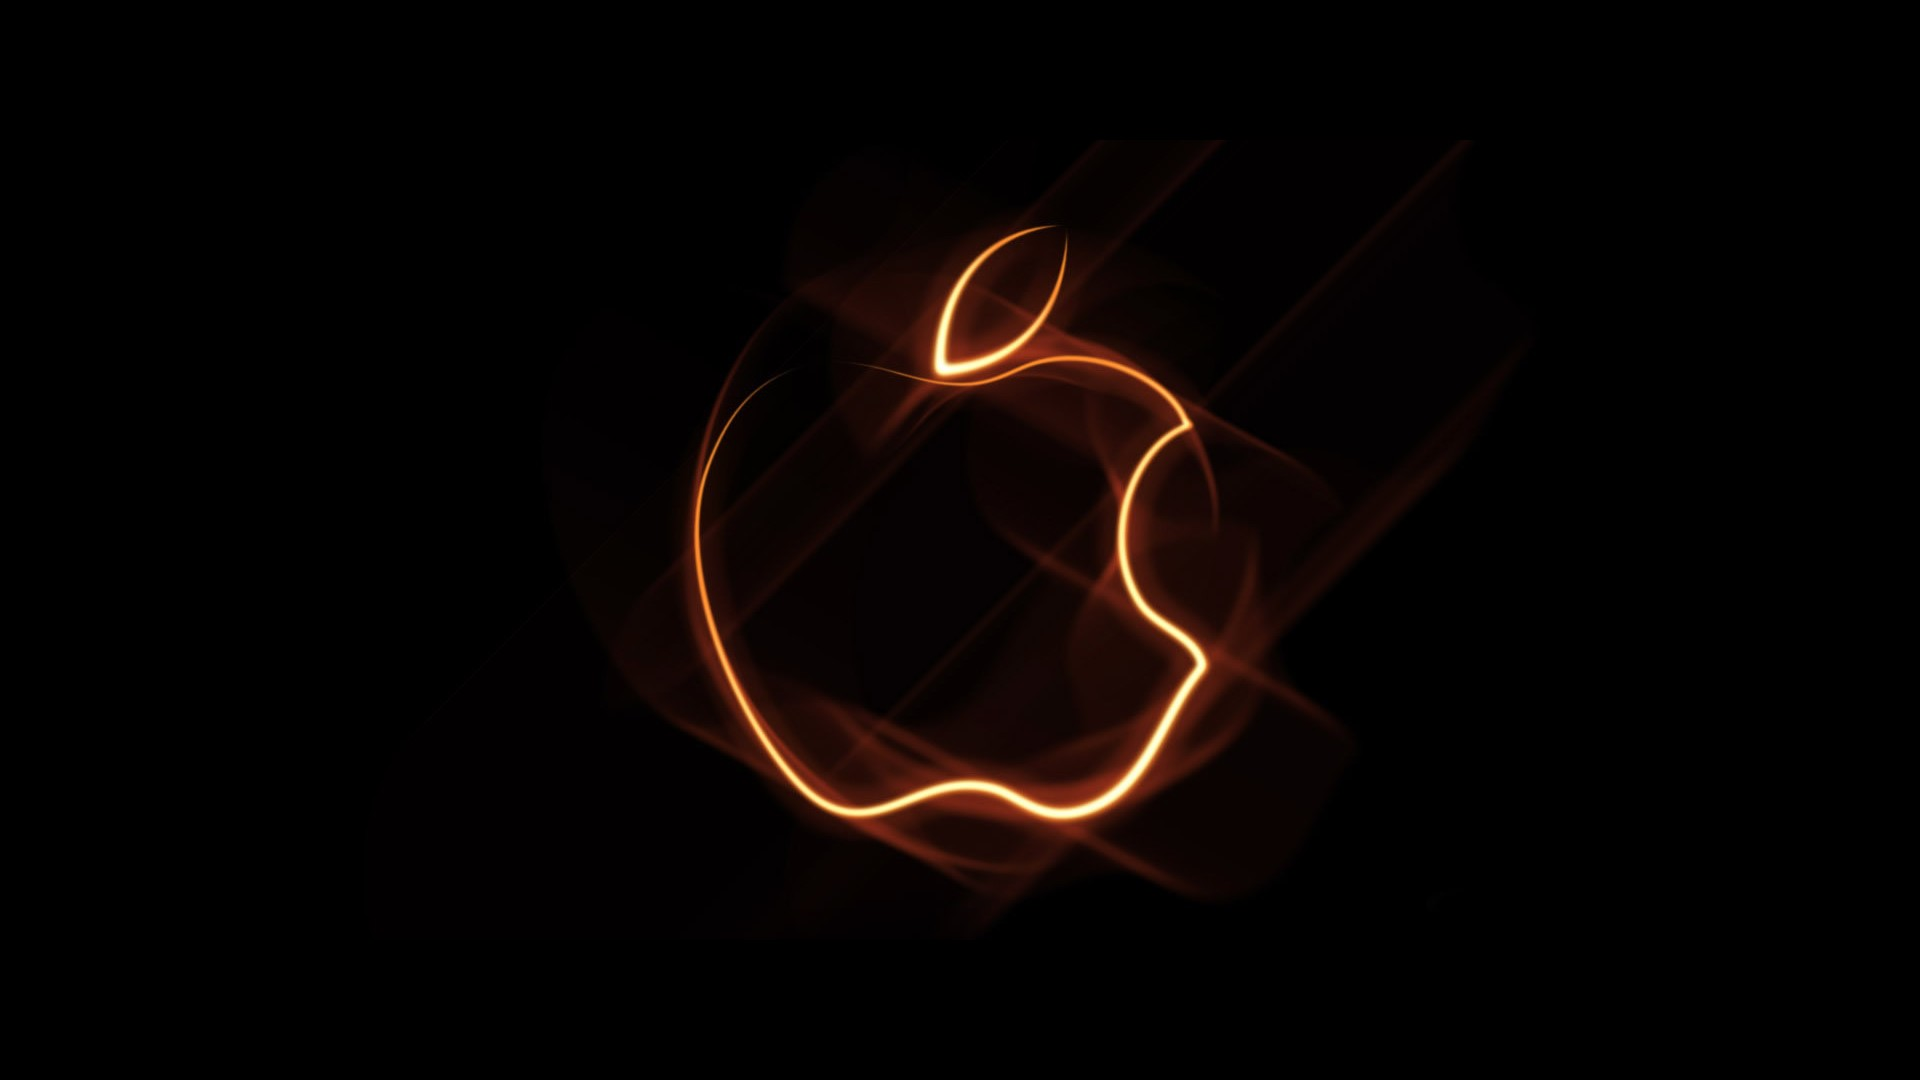 Orange Outline Apple Logo Wallpaper For Desktop And Mobiles Iphone 7